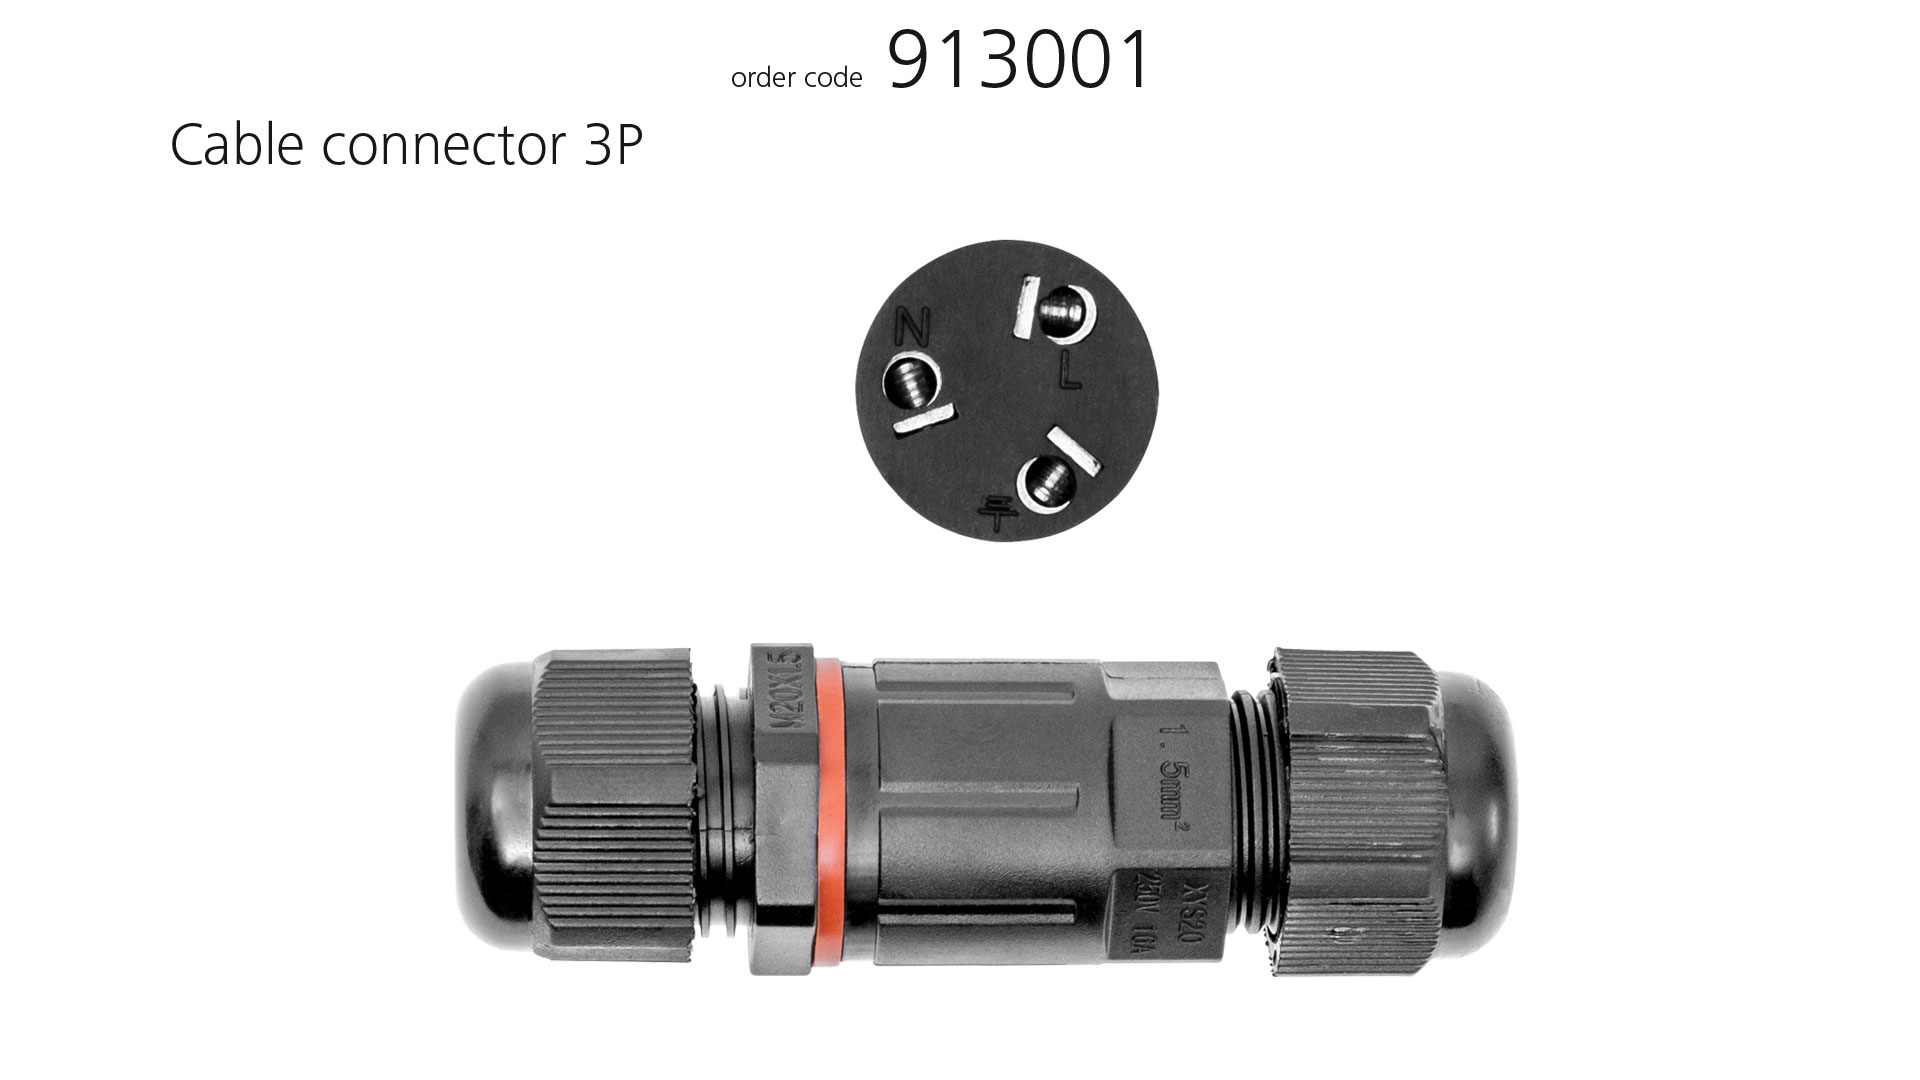 Accessories Cable connector 3P